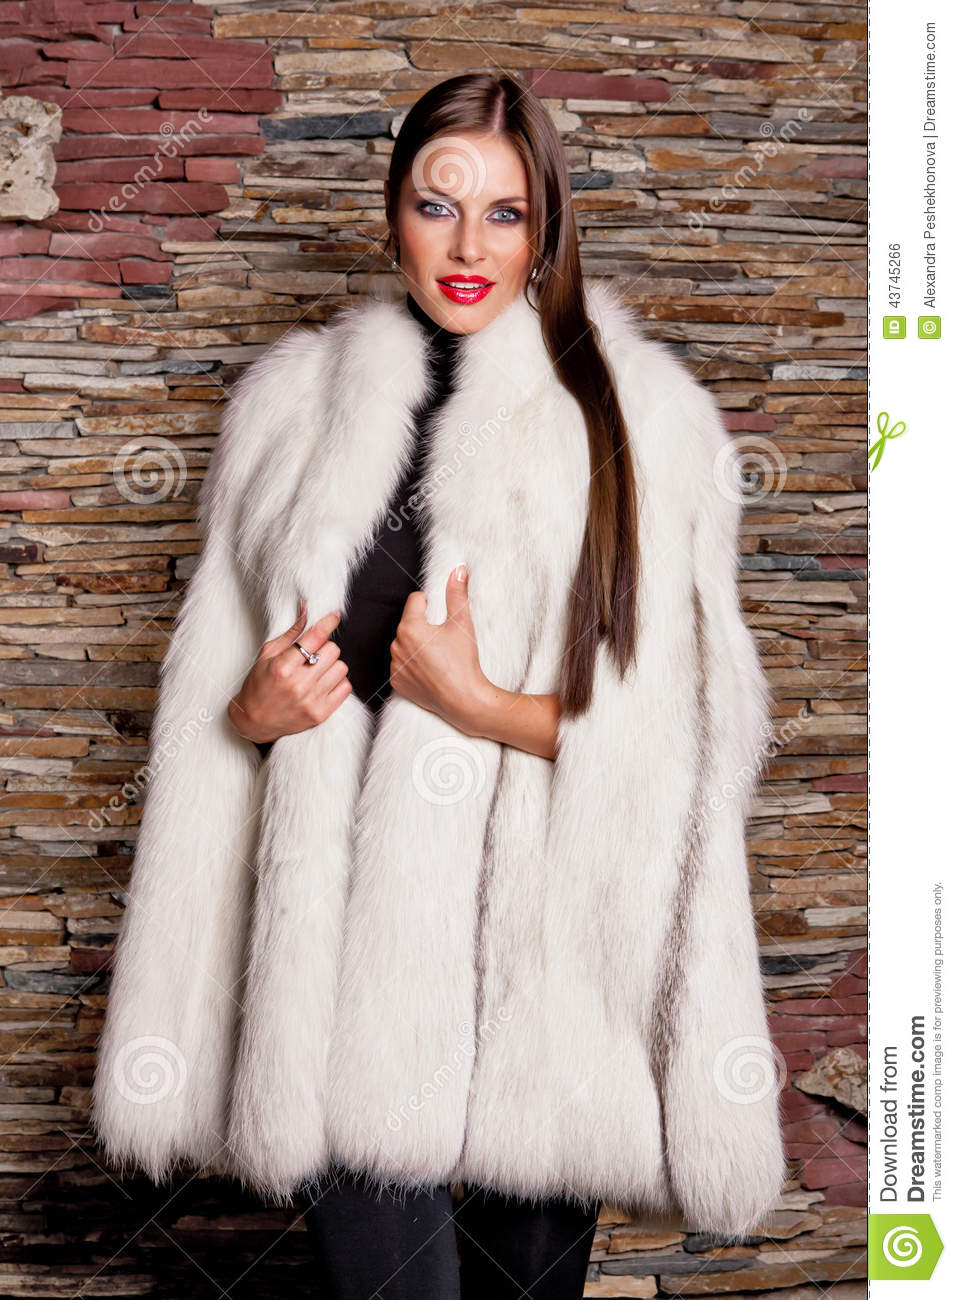 woman in luxury white fur coat stock photo image 43745266. Black Bedroom Furniture Sets. Home Design Ideas